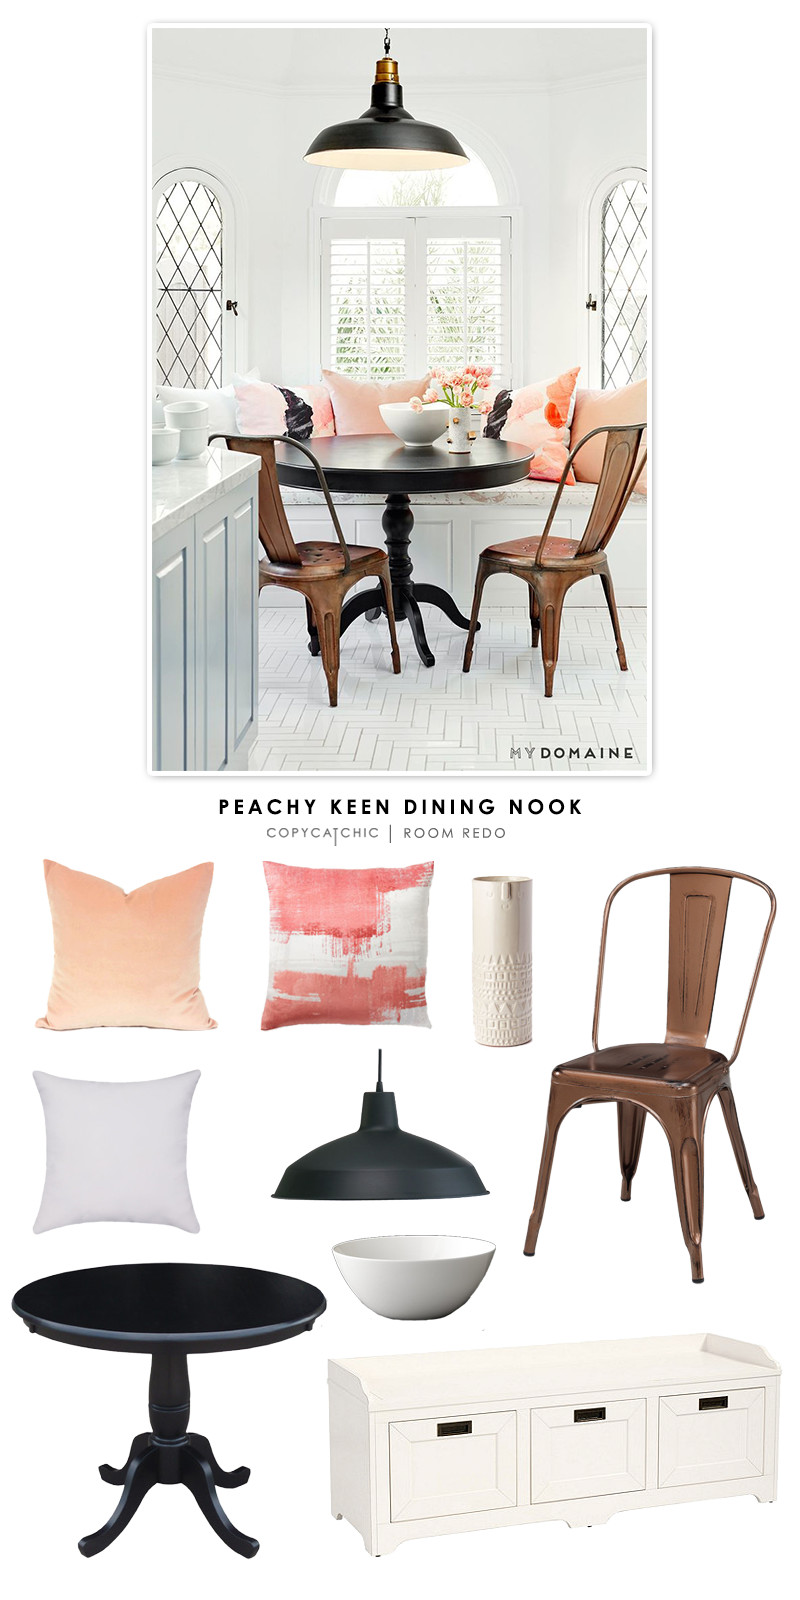 Peachy Keen Dining Nook